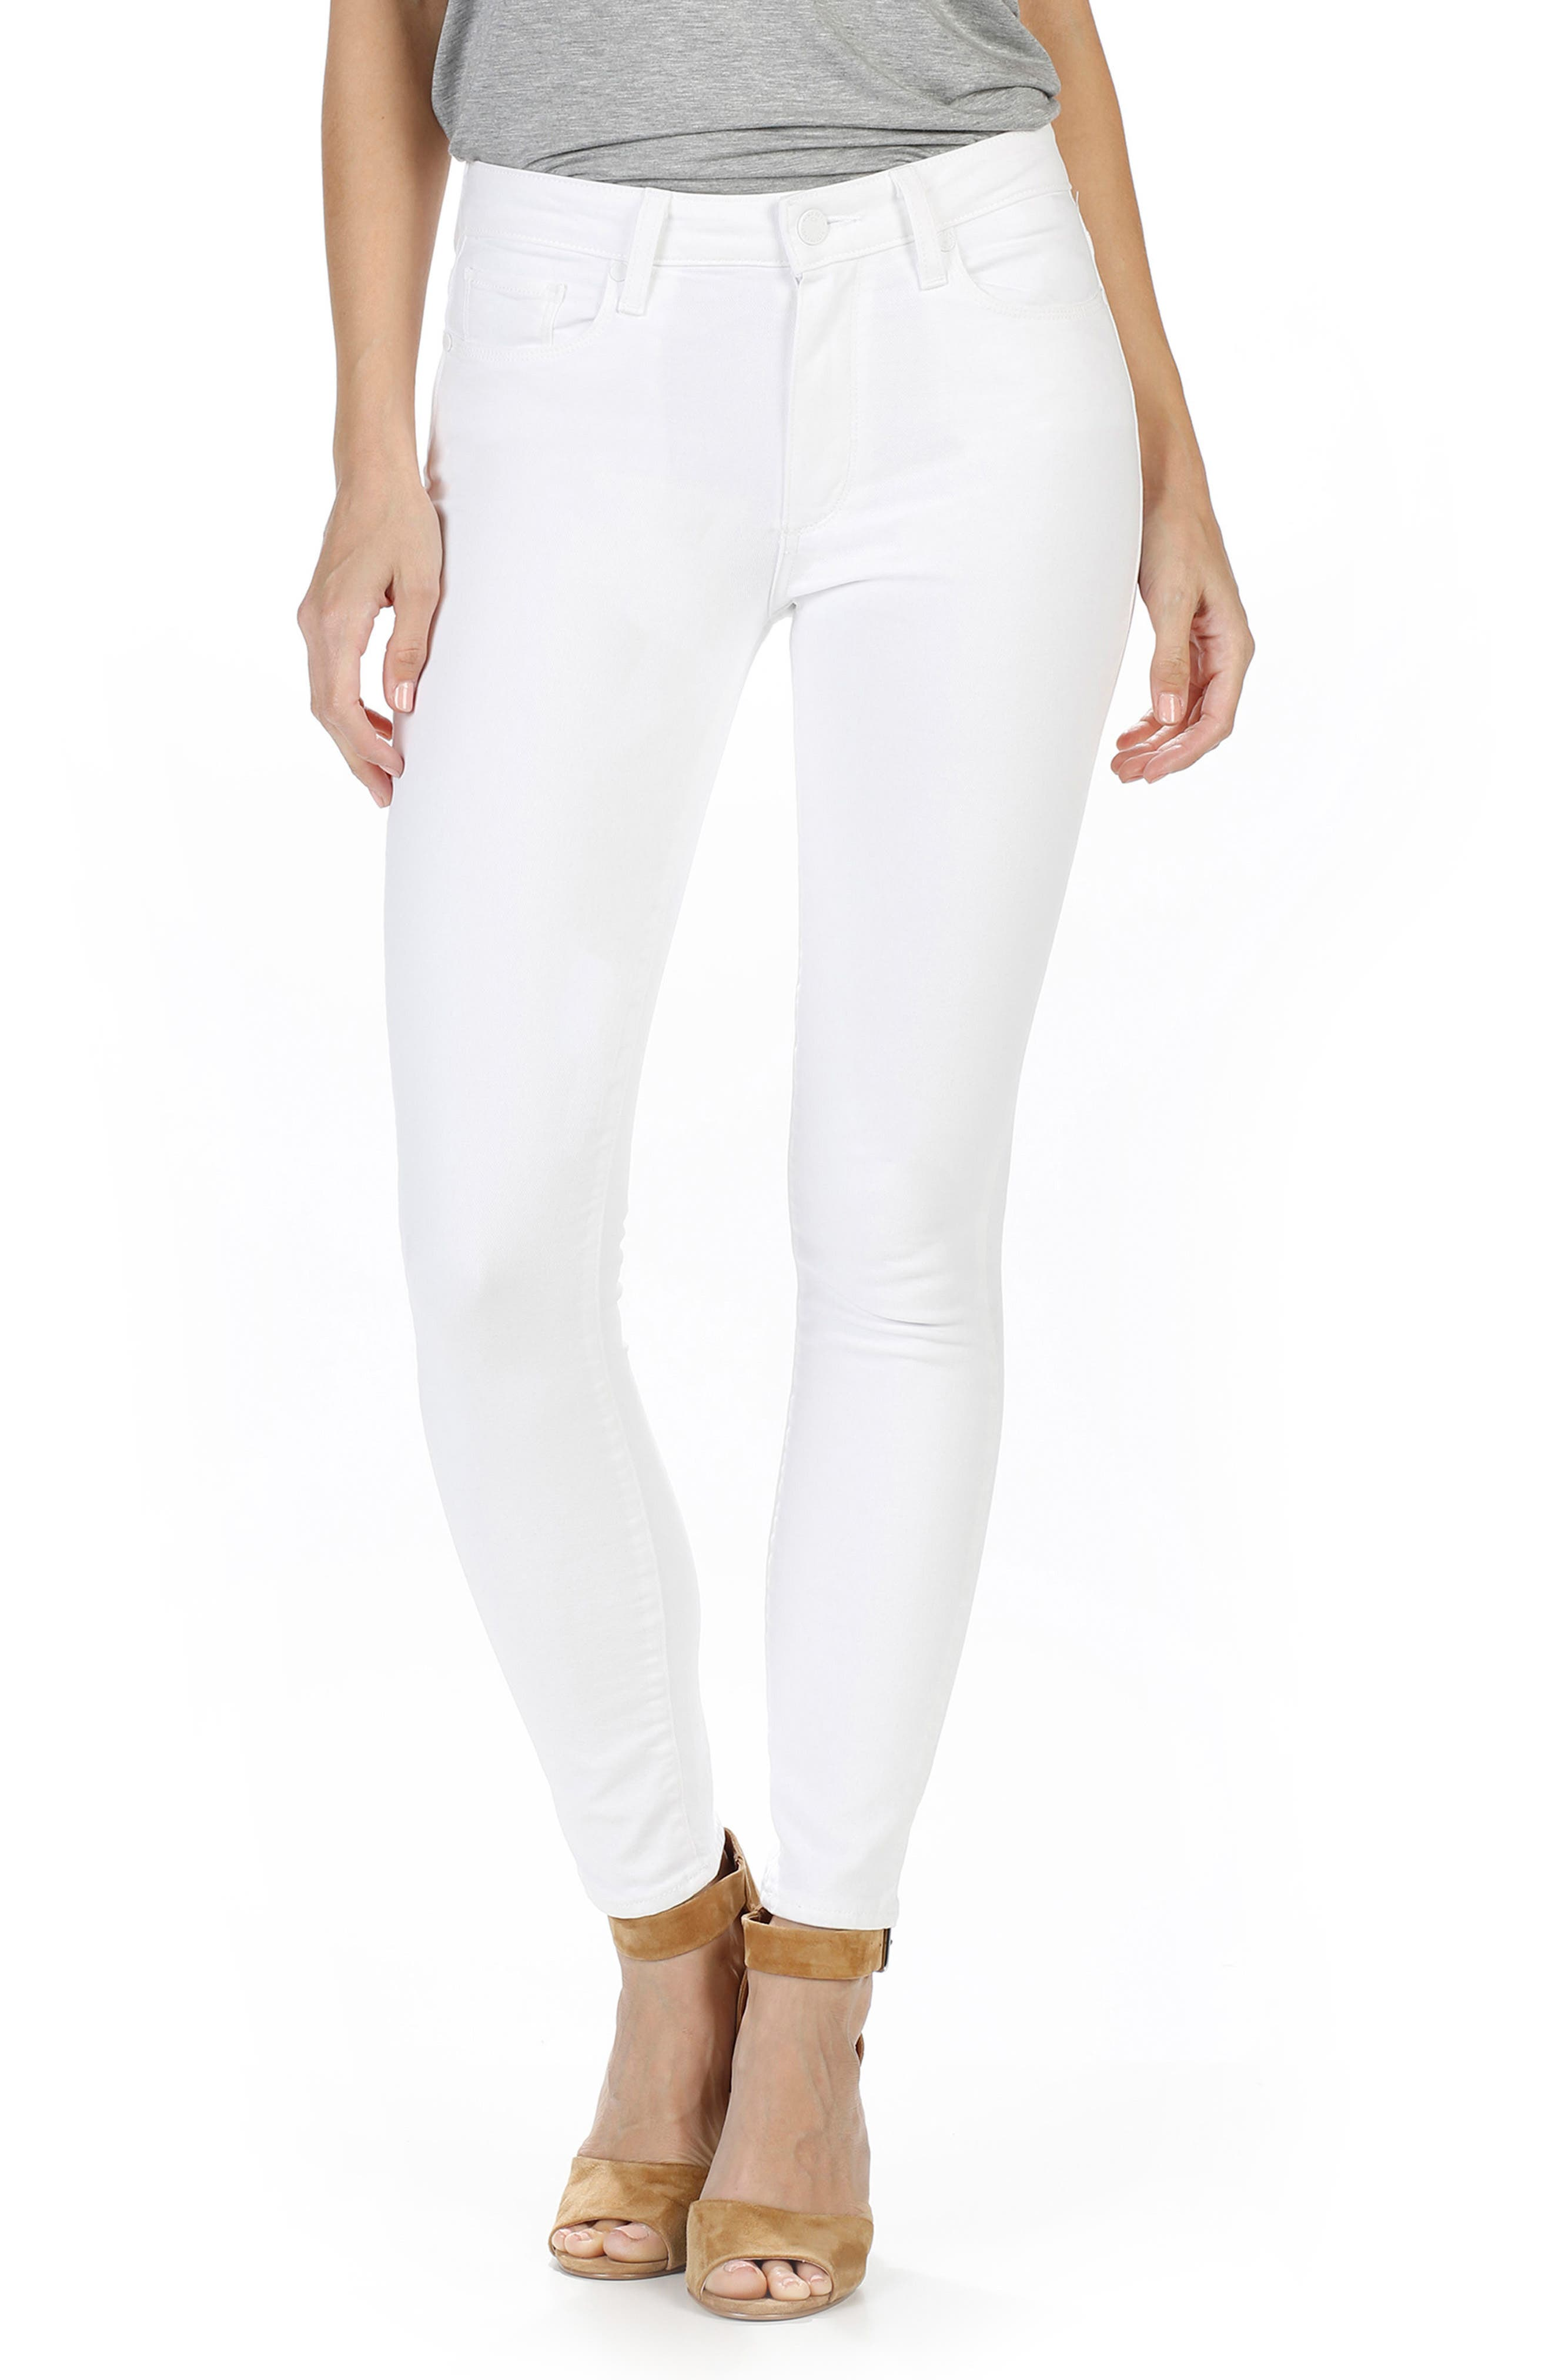 Hoxton High Waist Ankle Skinny Jeans,                         Main,                         color, 101